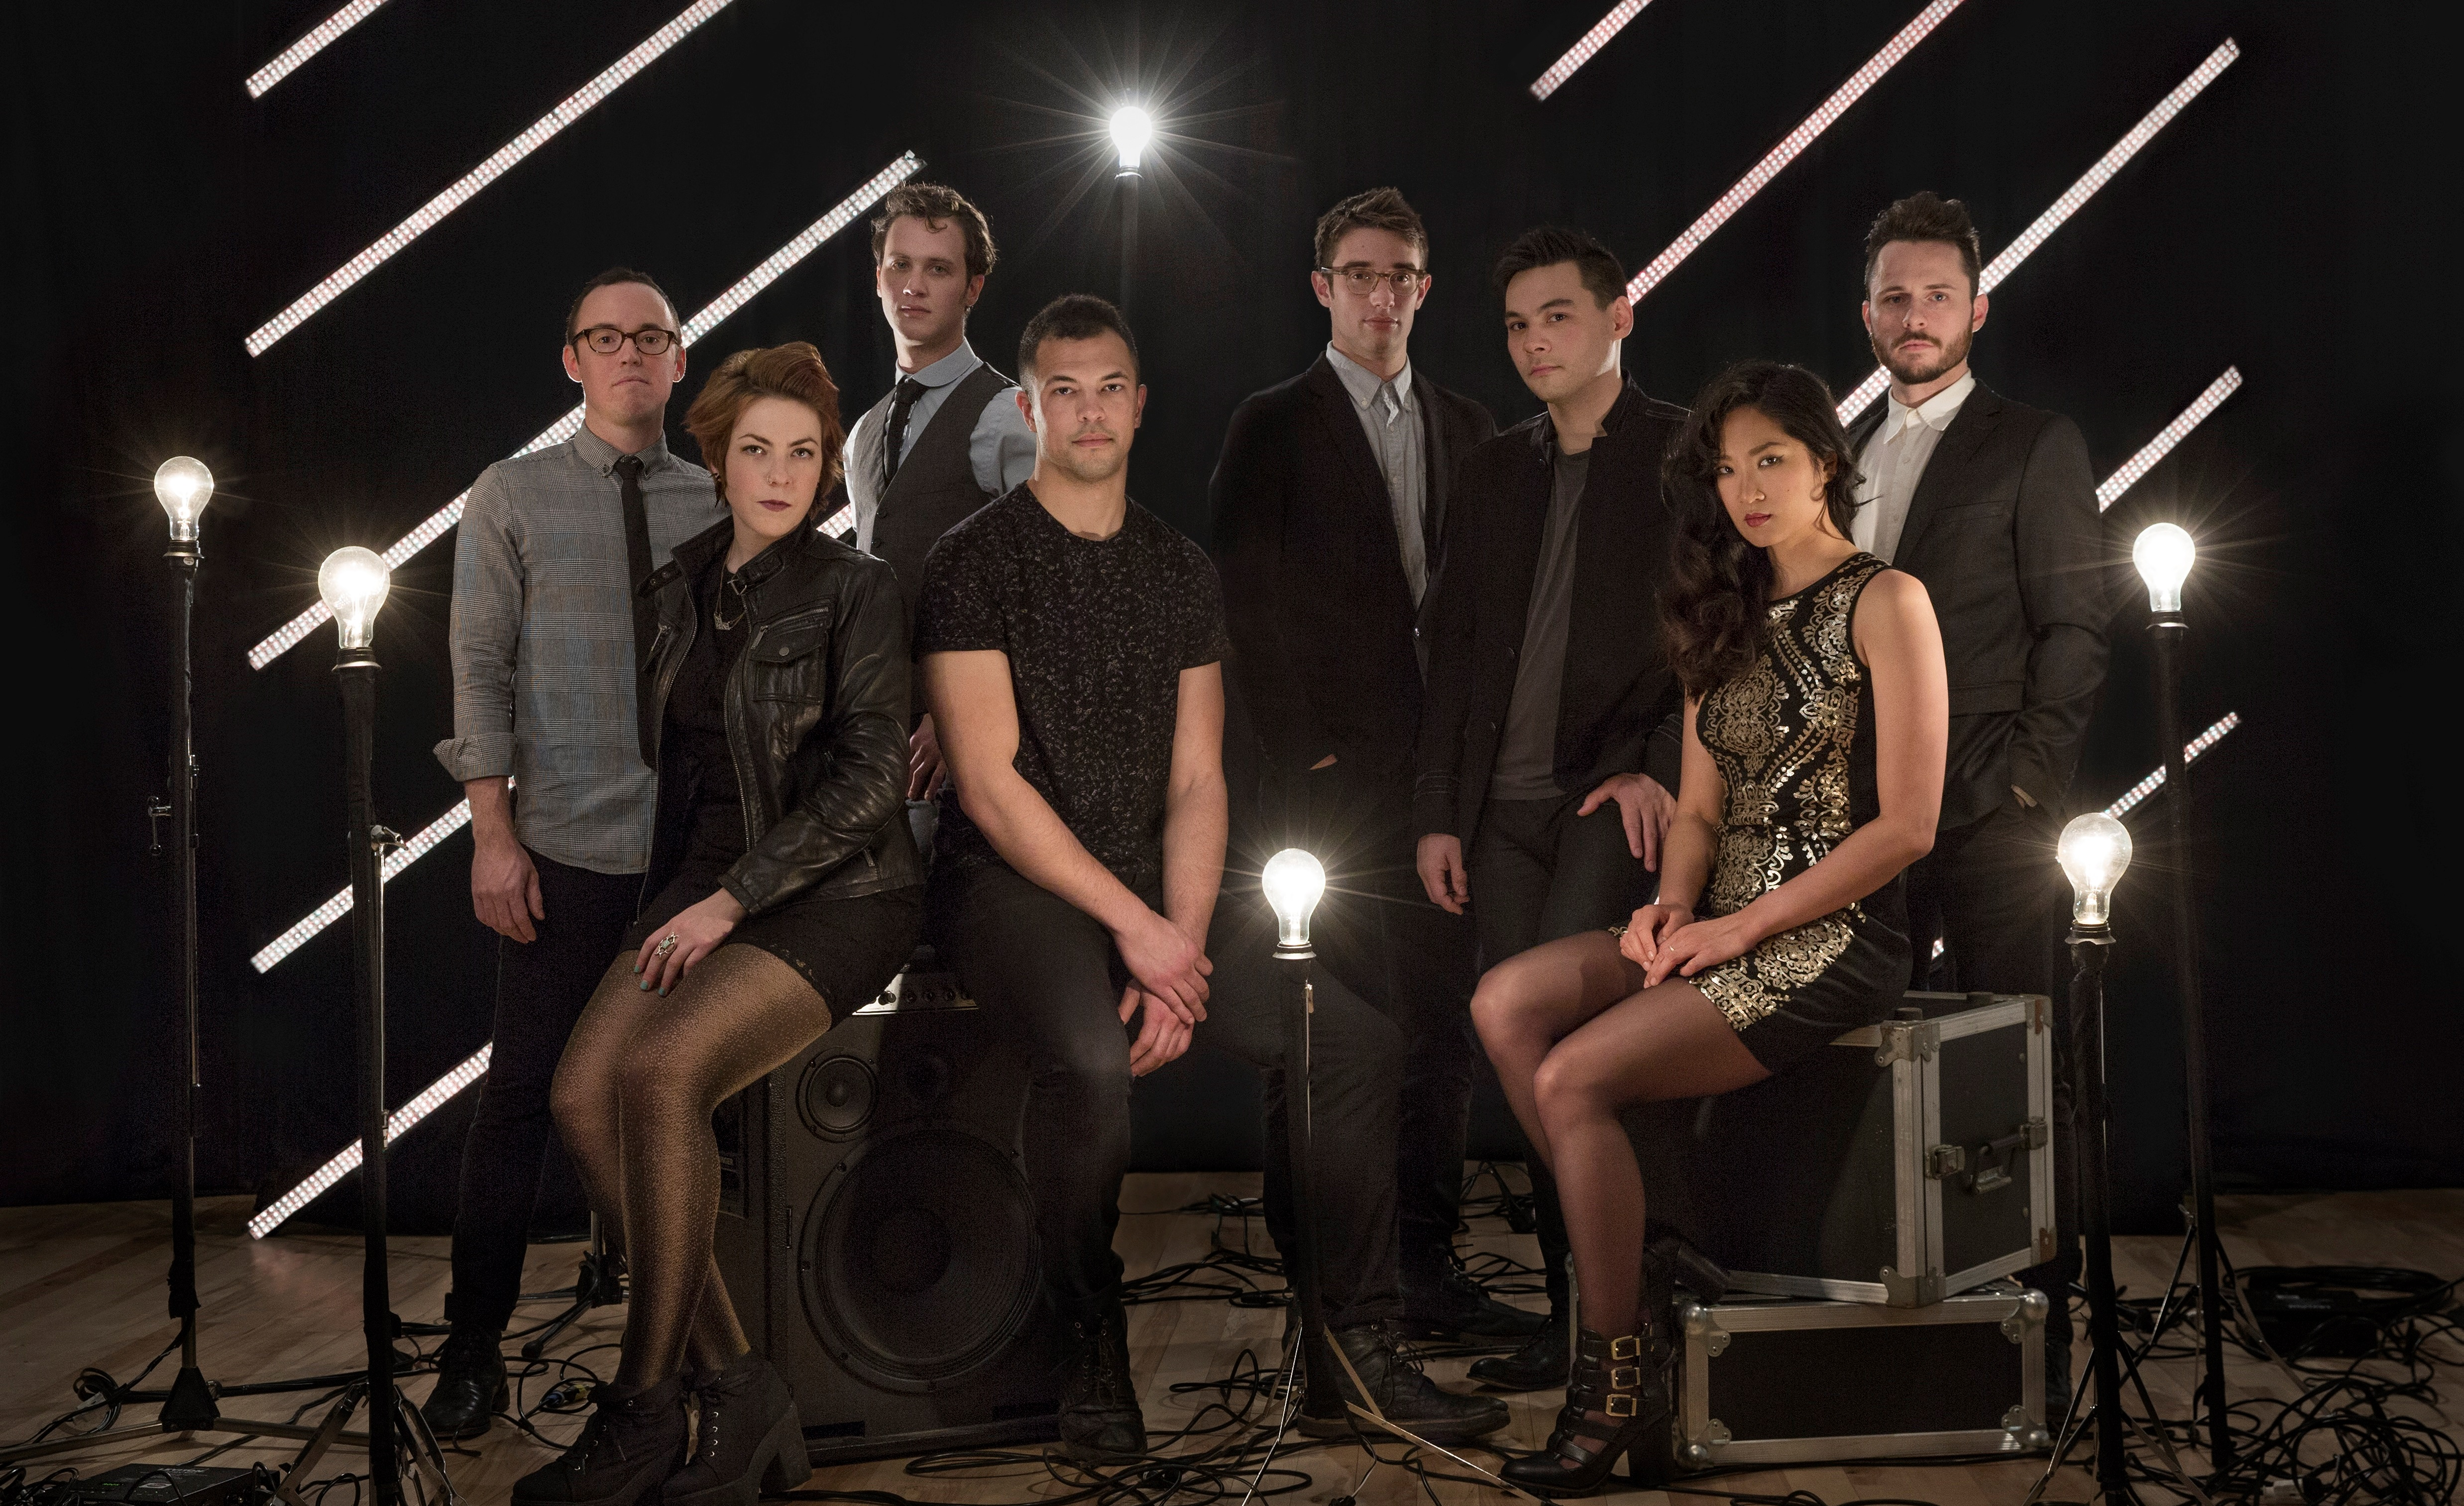 _images_uploads_gallery_San_Fermin_Band_Photo_(credit_Denny_Renshaw)